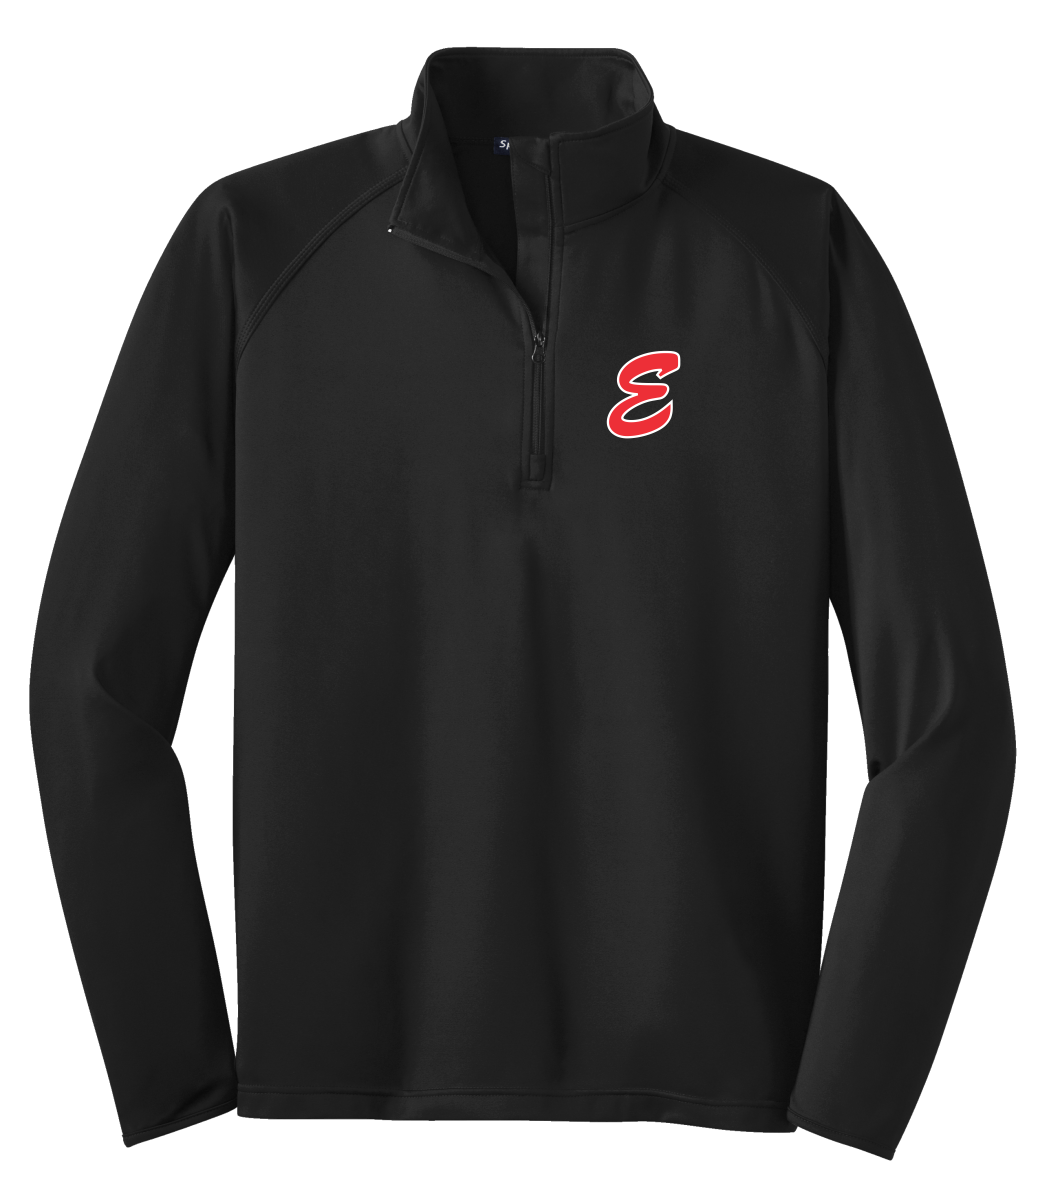 MENS ST850  Sport-Tek® Sport-Wick® Stretch 1/2-Zip Pullover with embroidered E logo